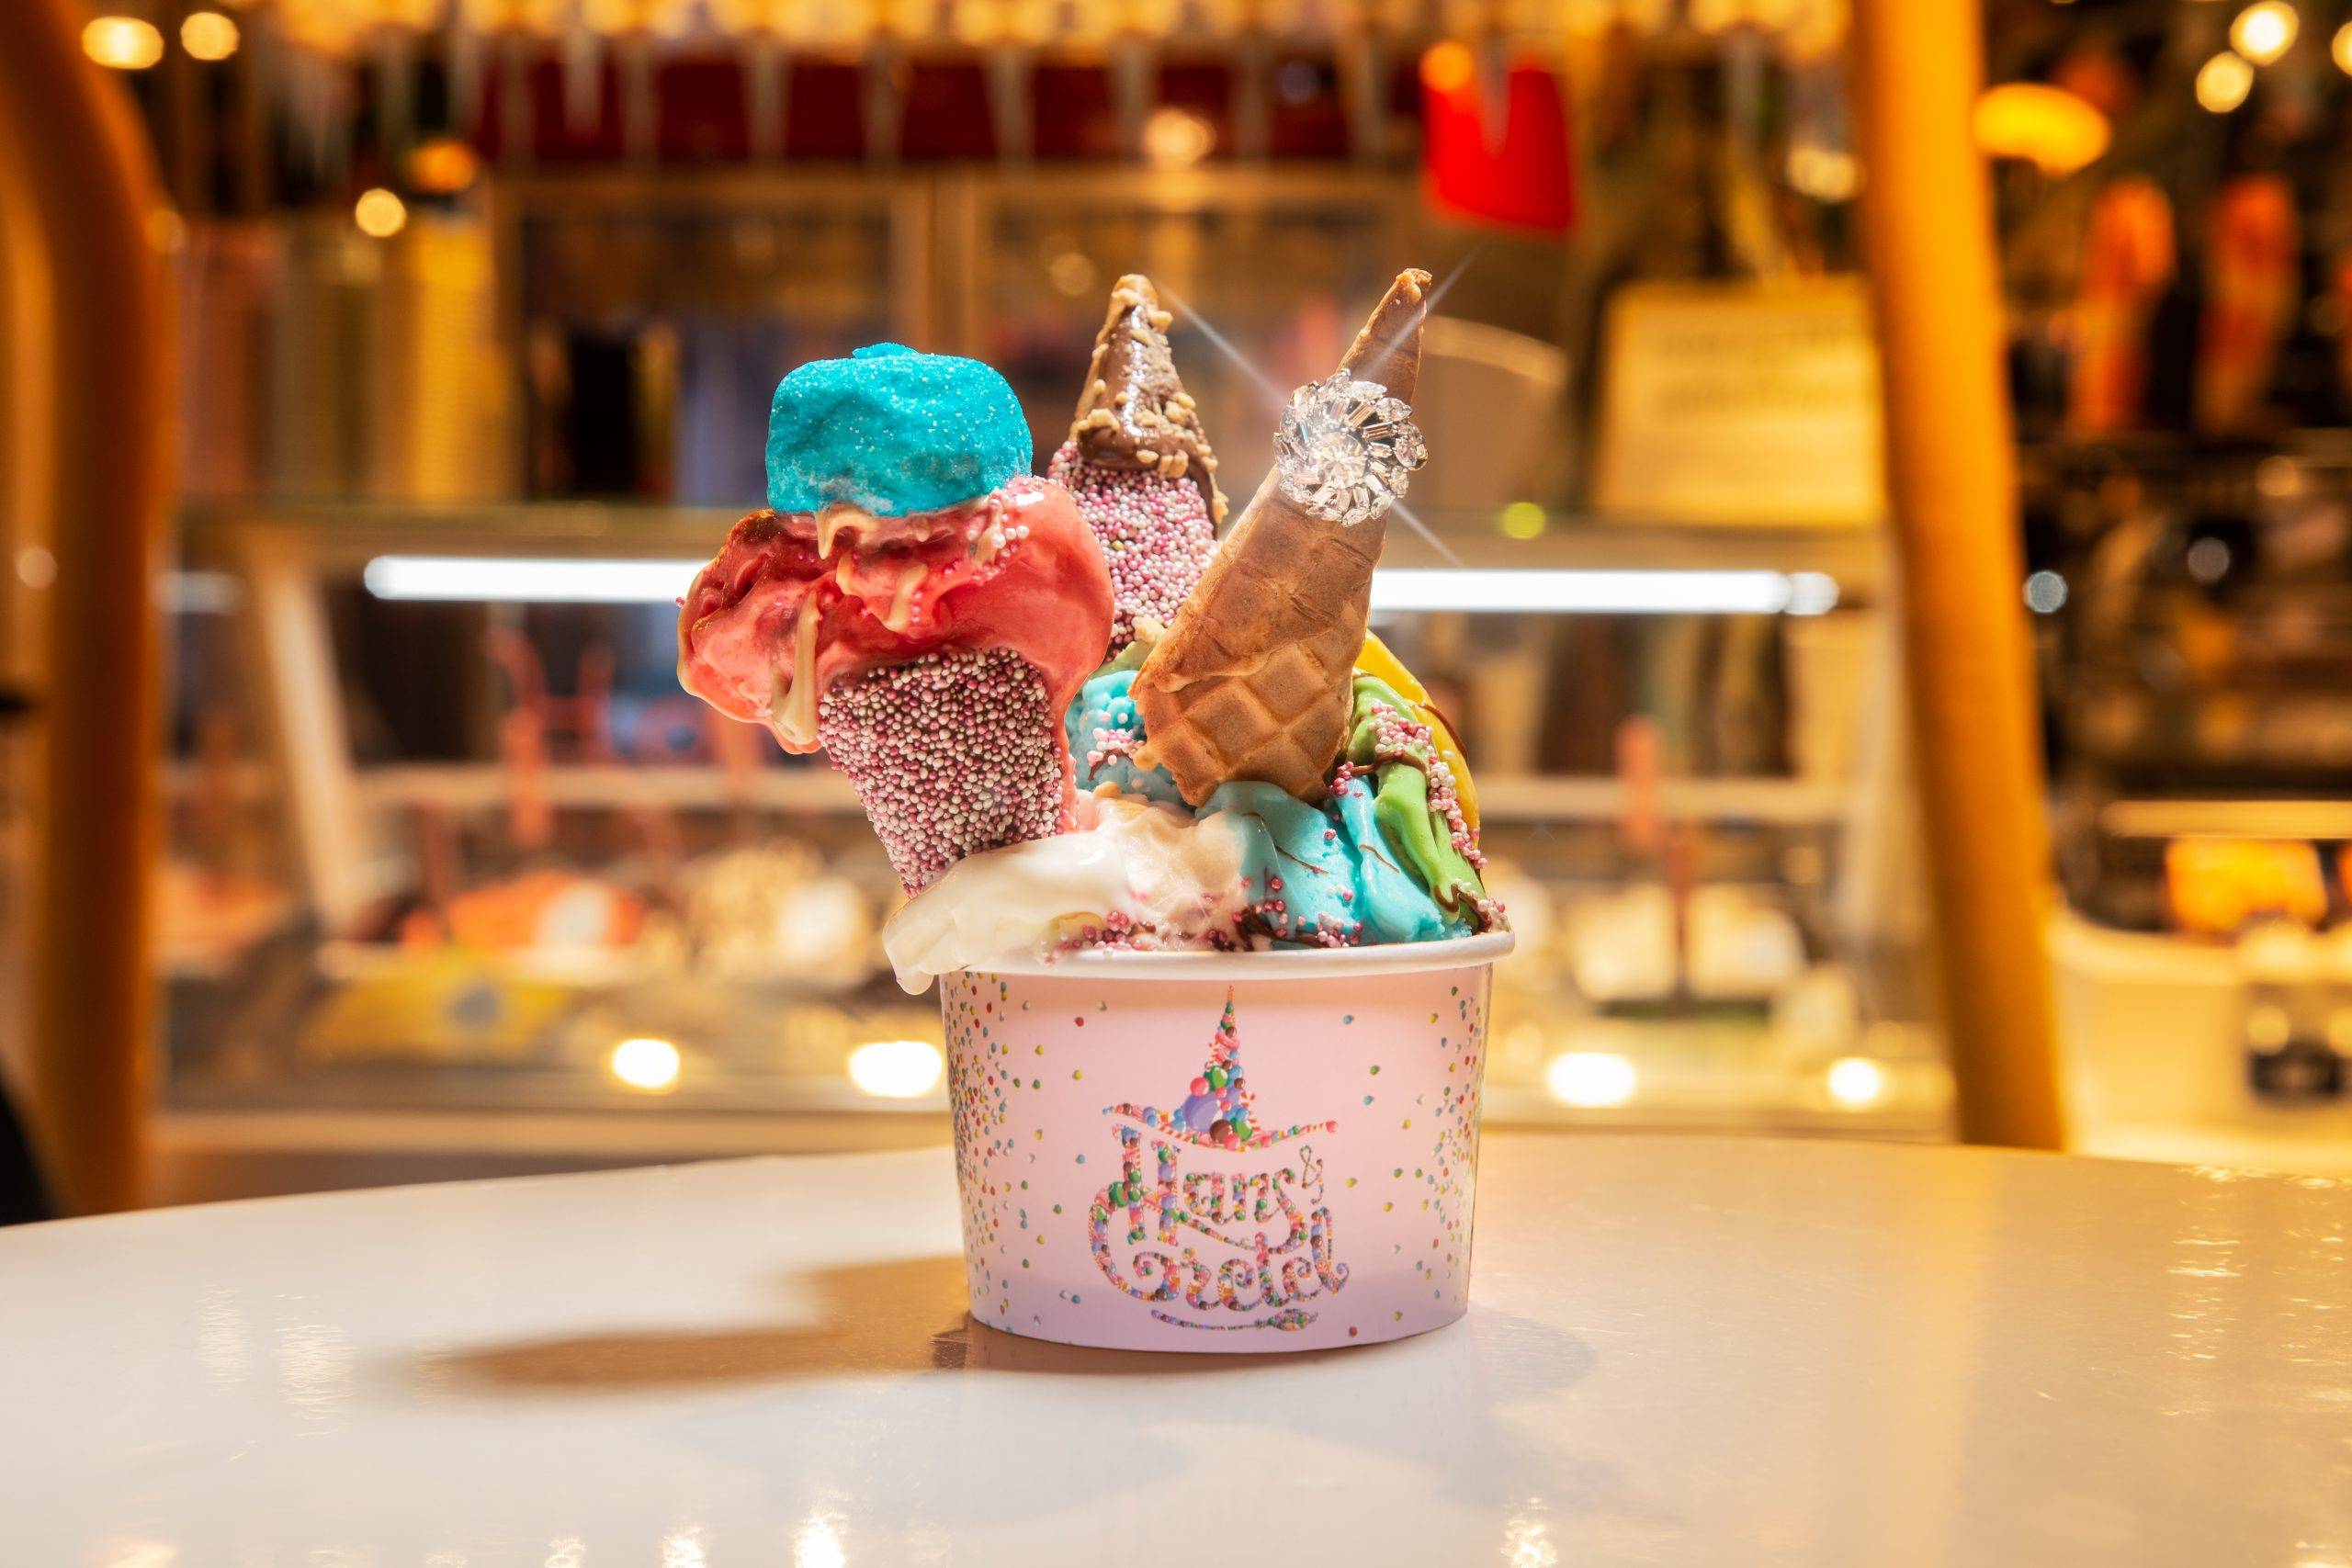 The World S Most Expensive Ice Cream For Valentine S Day Eat Drink Sleep